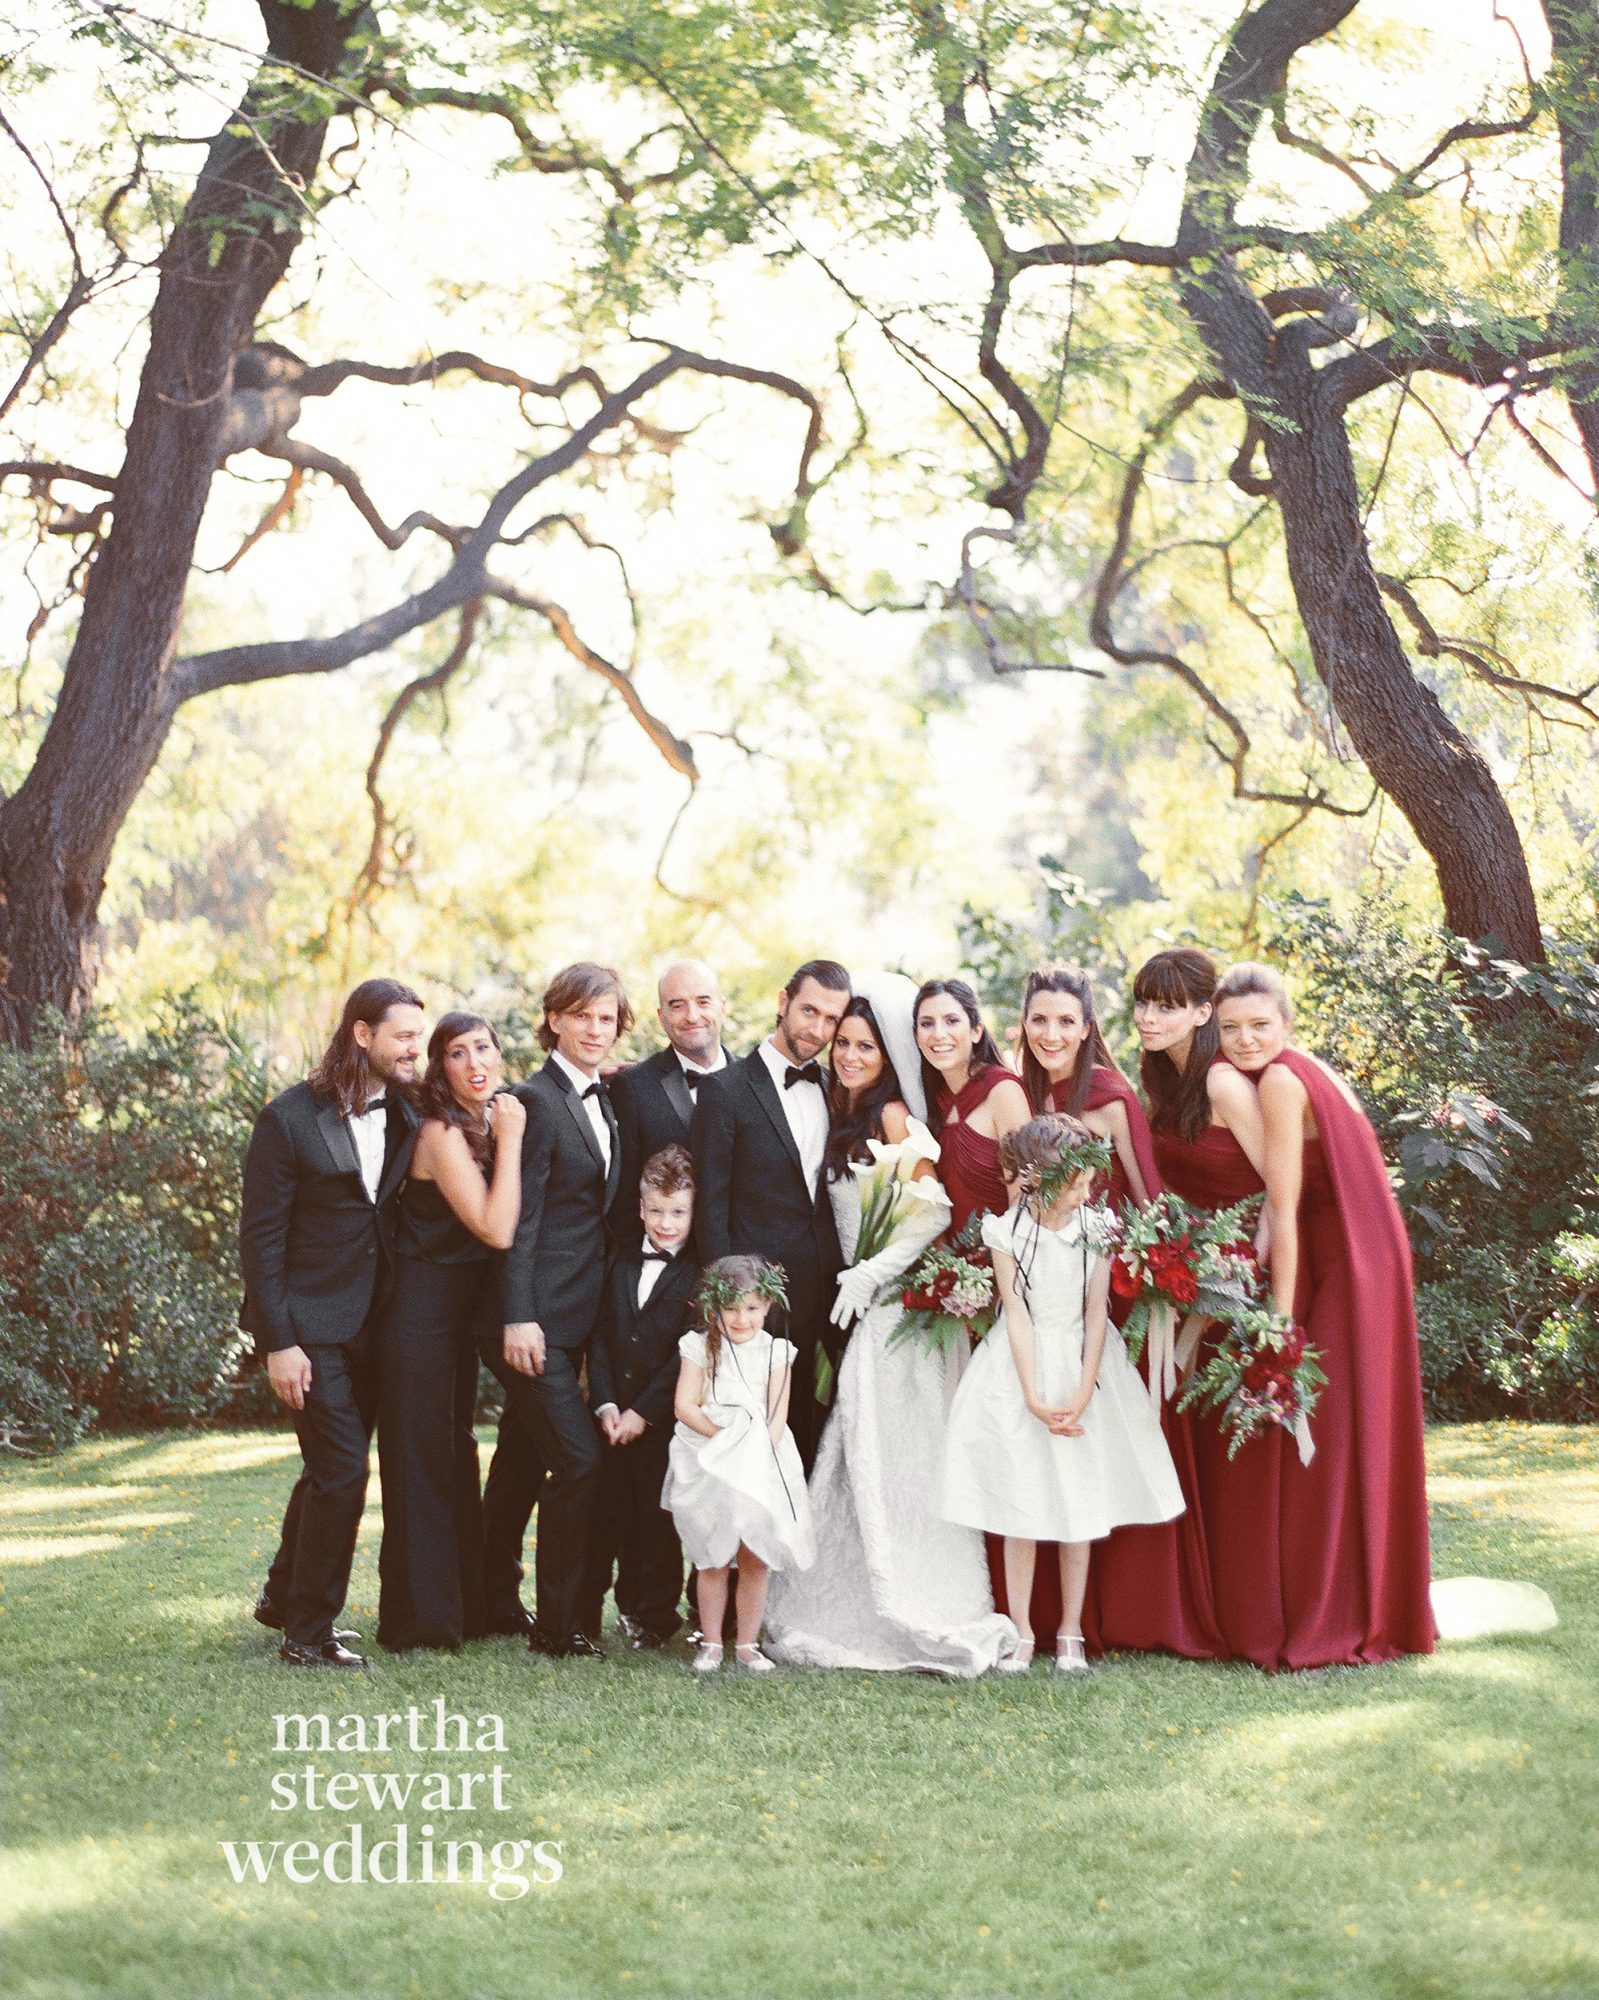 sophia-joel-wedding-los-angeles-132-d112240-r2-watermarked-0815.jpg